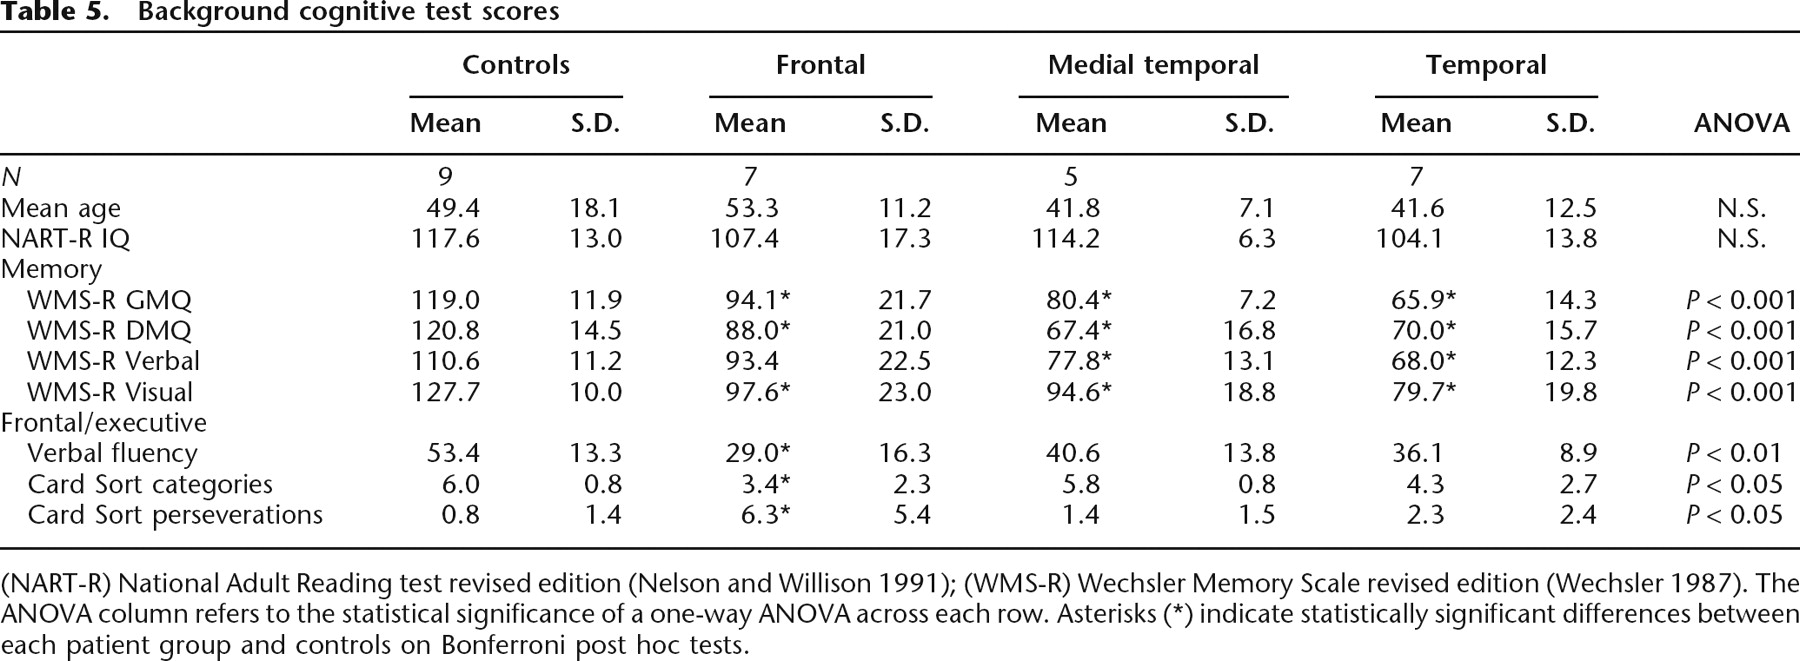 Retrograde amnesia in patients with hippocampal, medial